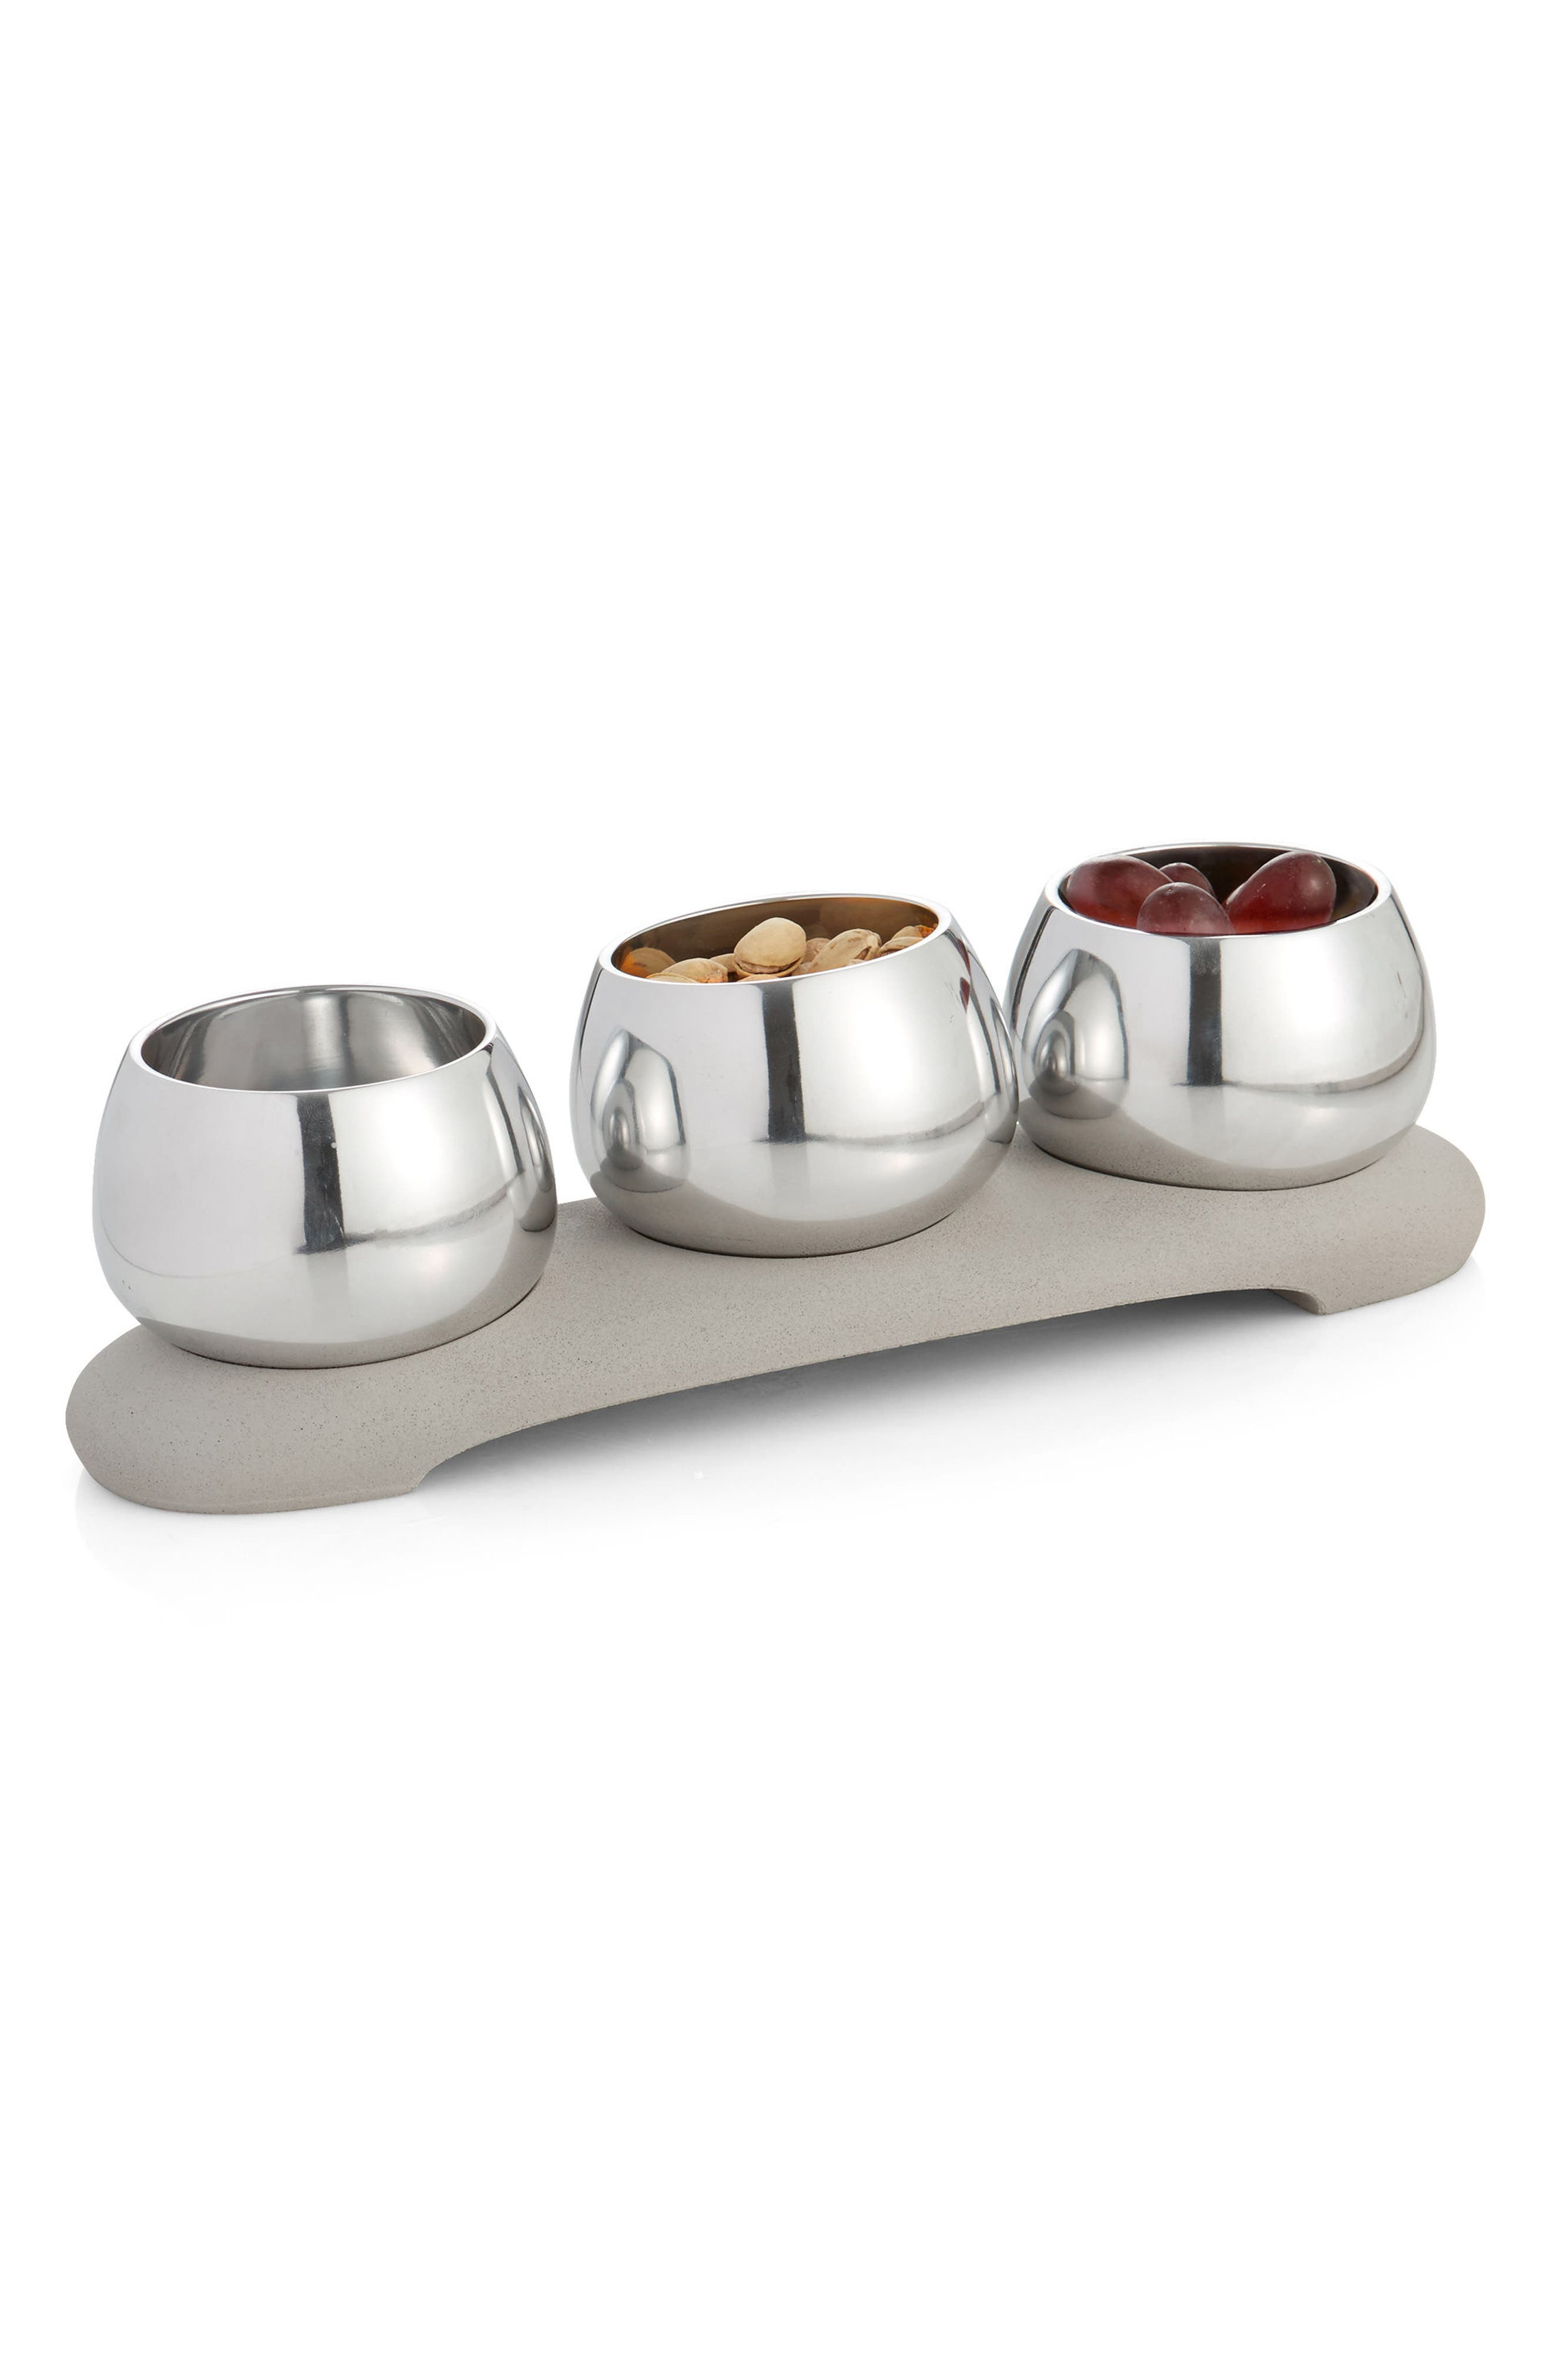 Forte 4-Piece Condiment Serving Set,                             Alternate thumbnail 2, color,                             020